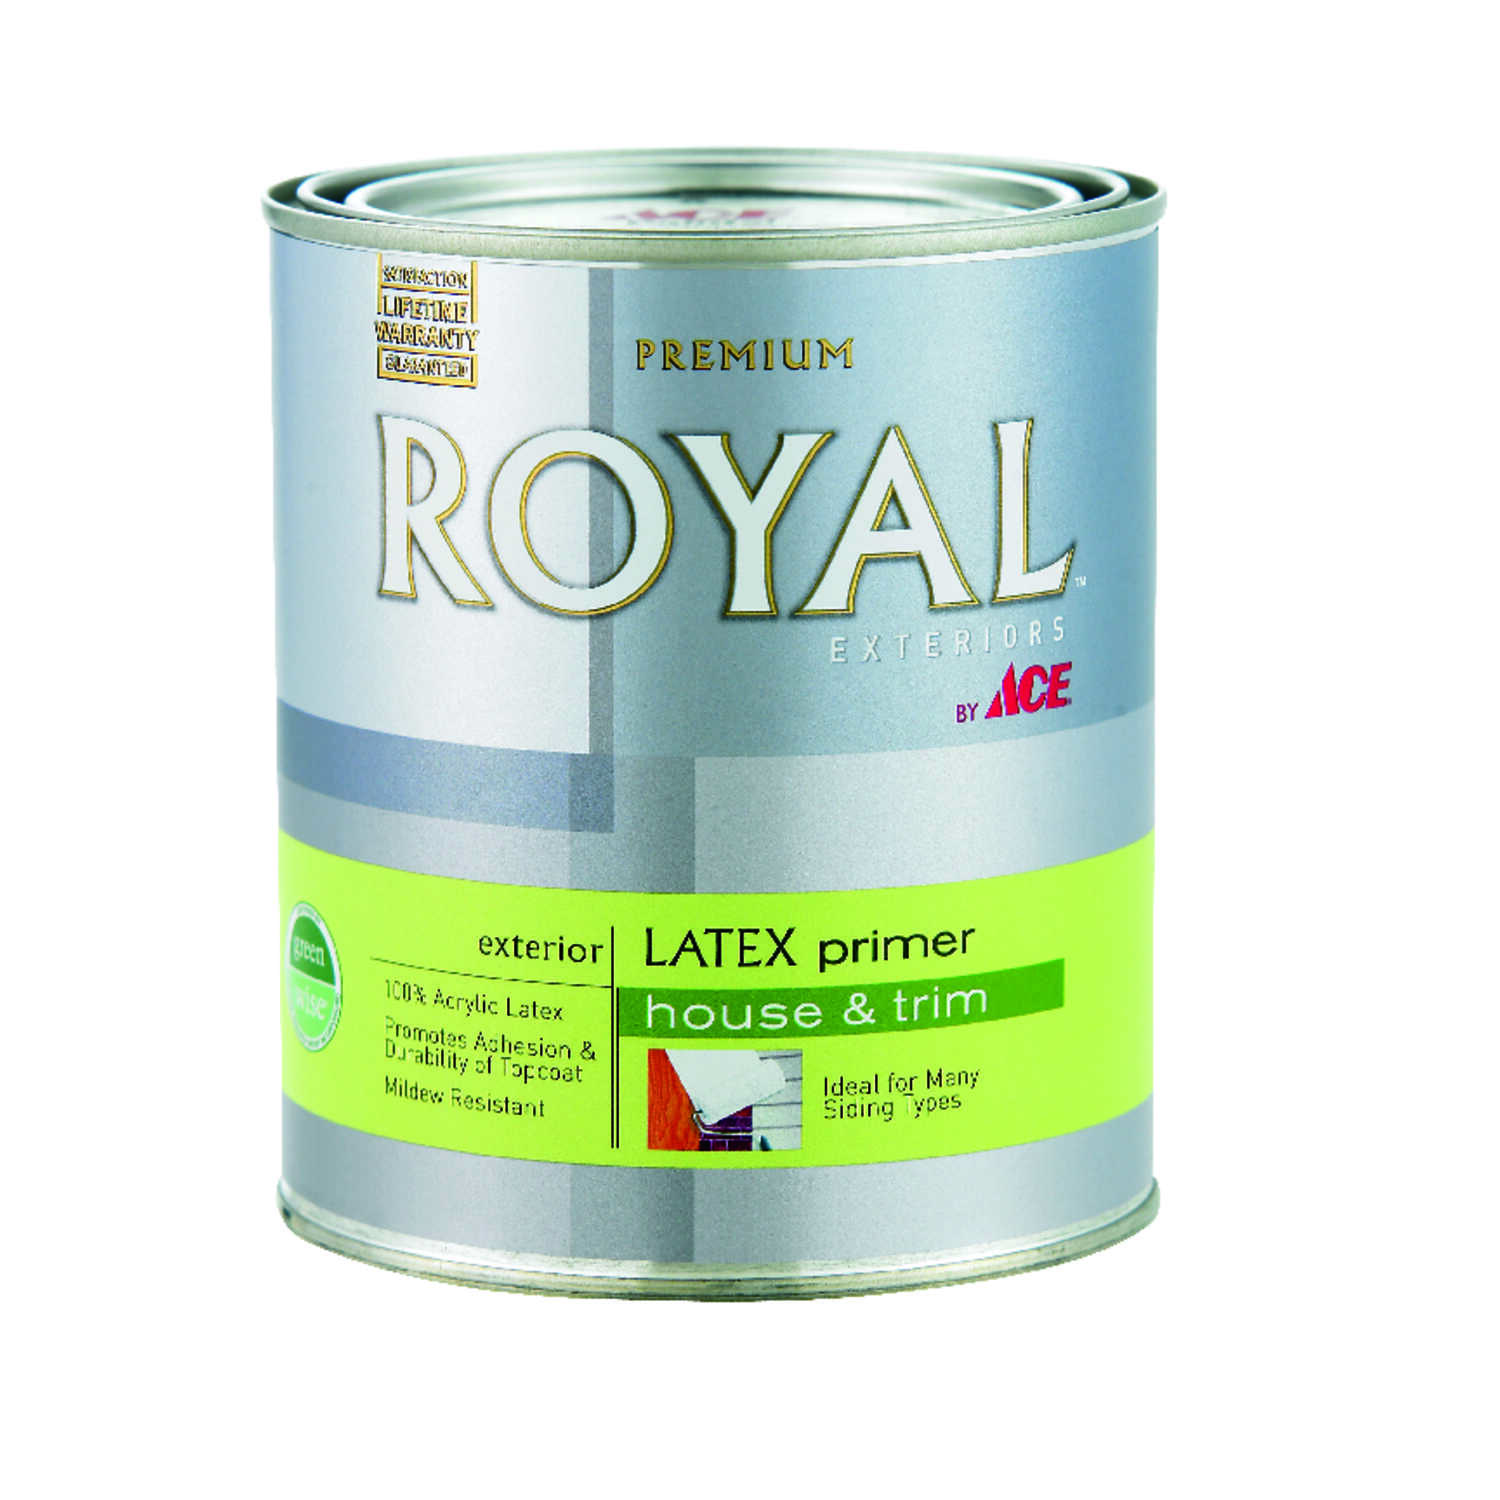 Ace  Royal Exteriors  Flat  Acrylic Latex  White  For Wood 1 qt. Latex Primer